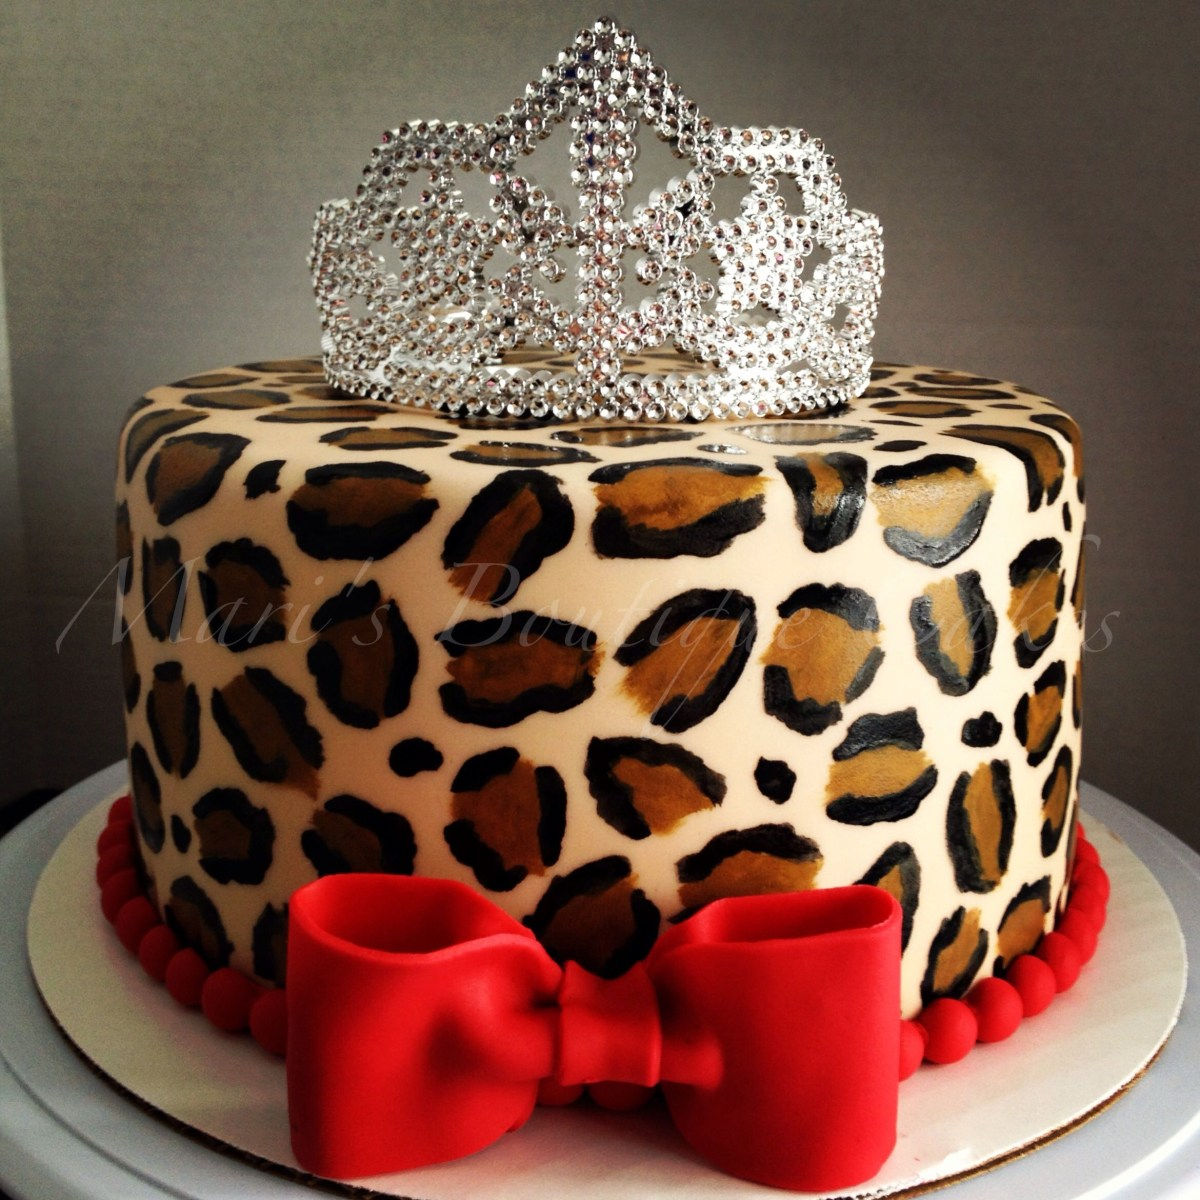 Outstanding Leopard Birthday Cake Leopard Print Cake For A Little Diva Maris Funny Birthday Cards Online Alyptdamsfinfo